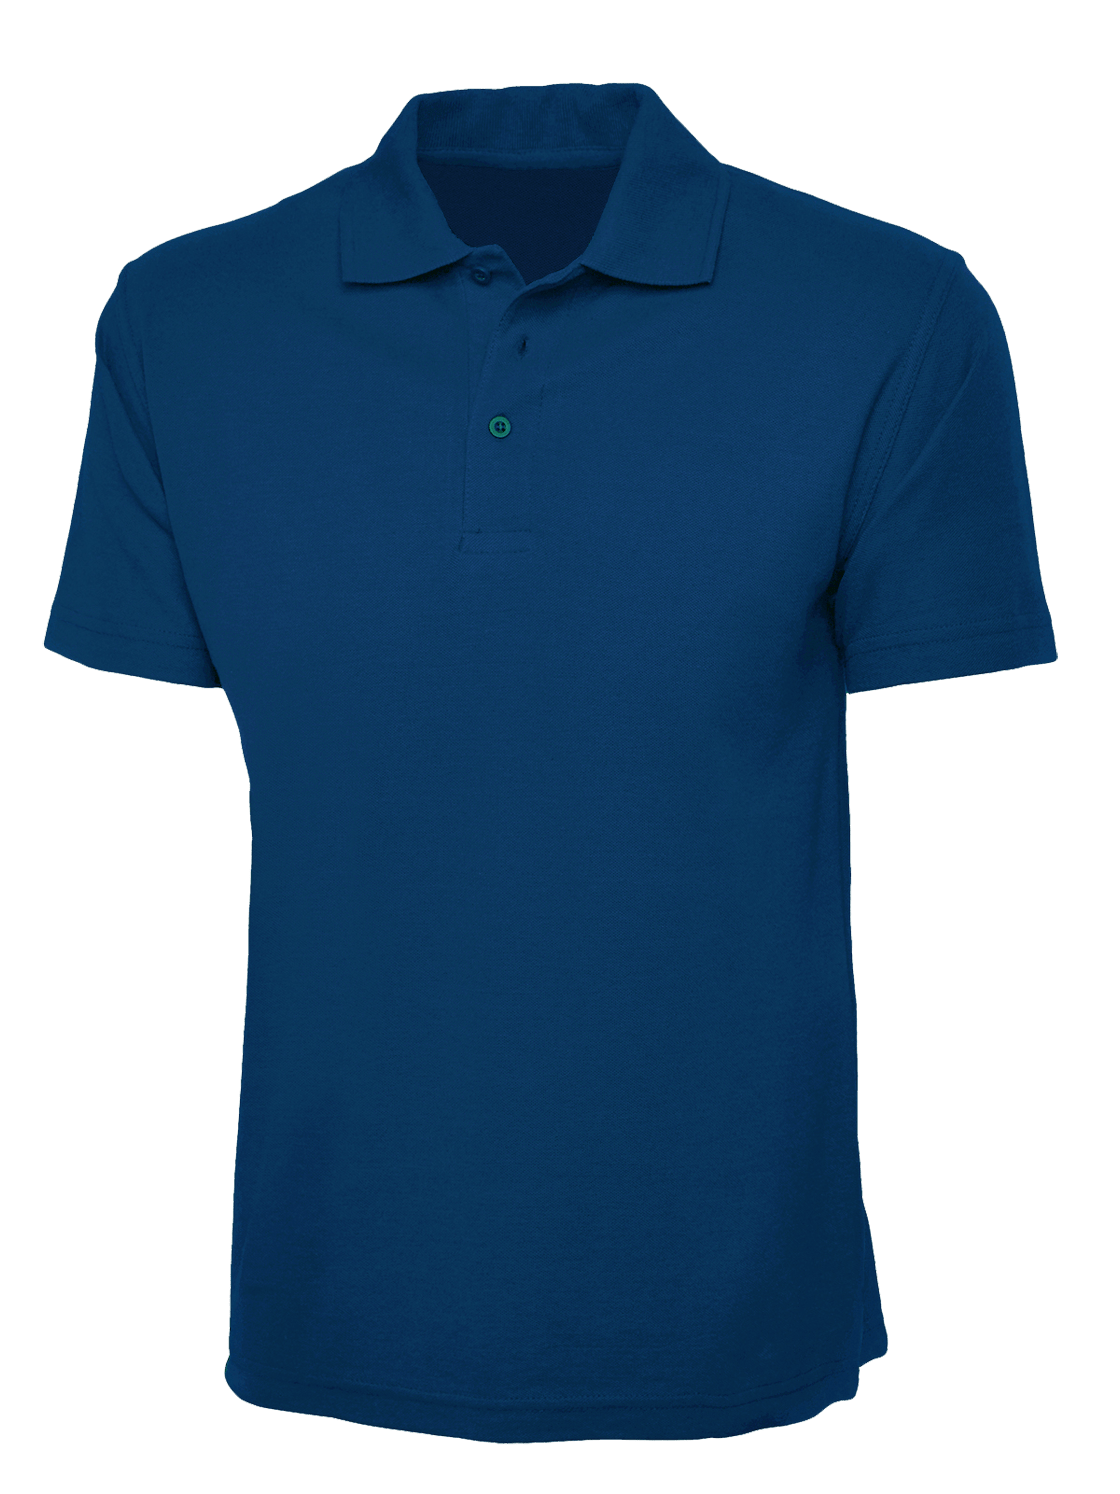 plain aqua blue polo shirt � cutton garments